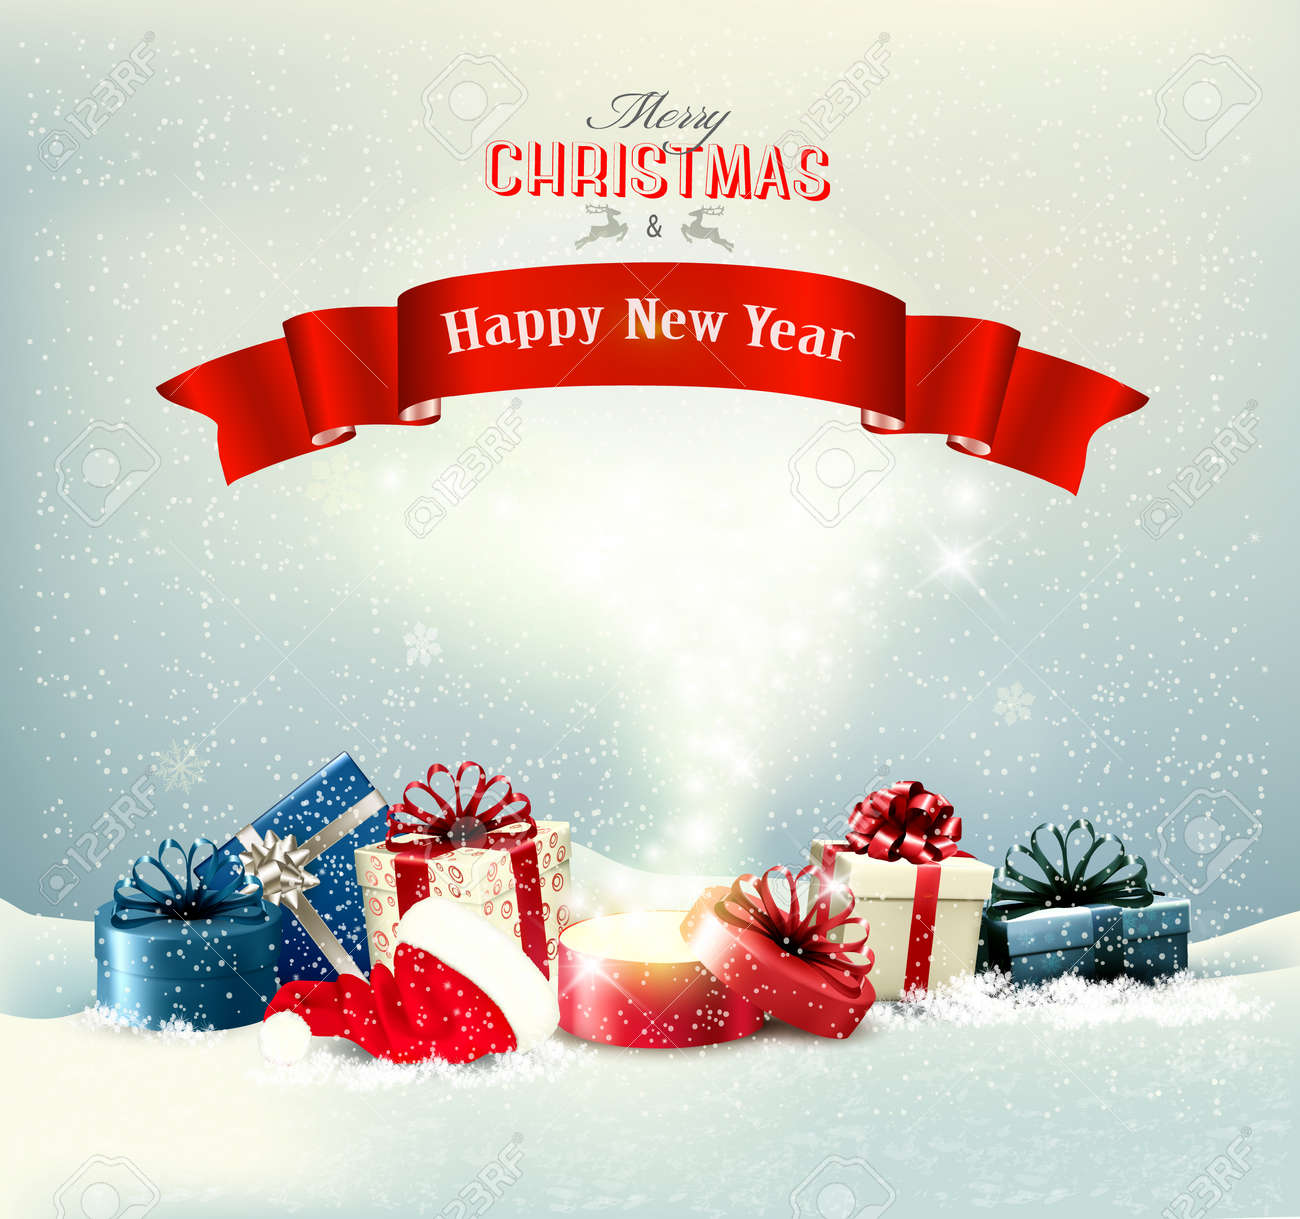 Holiday Christmas background with a presents and a magic box. Vector - 134685443